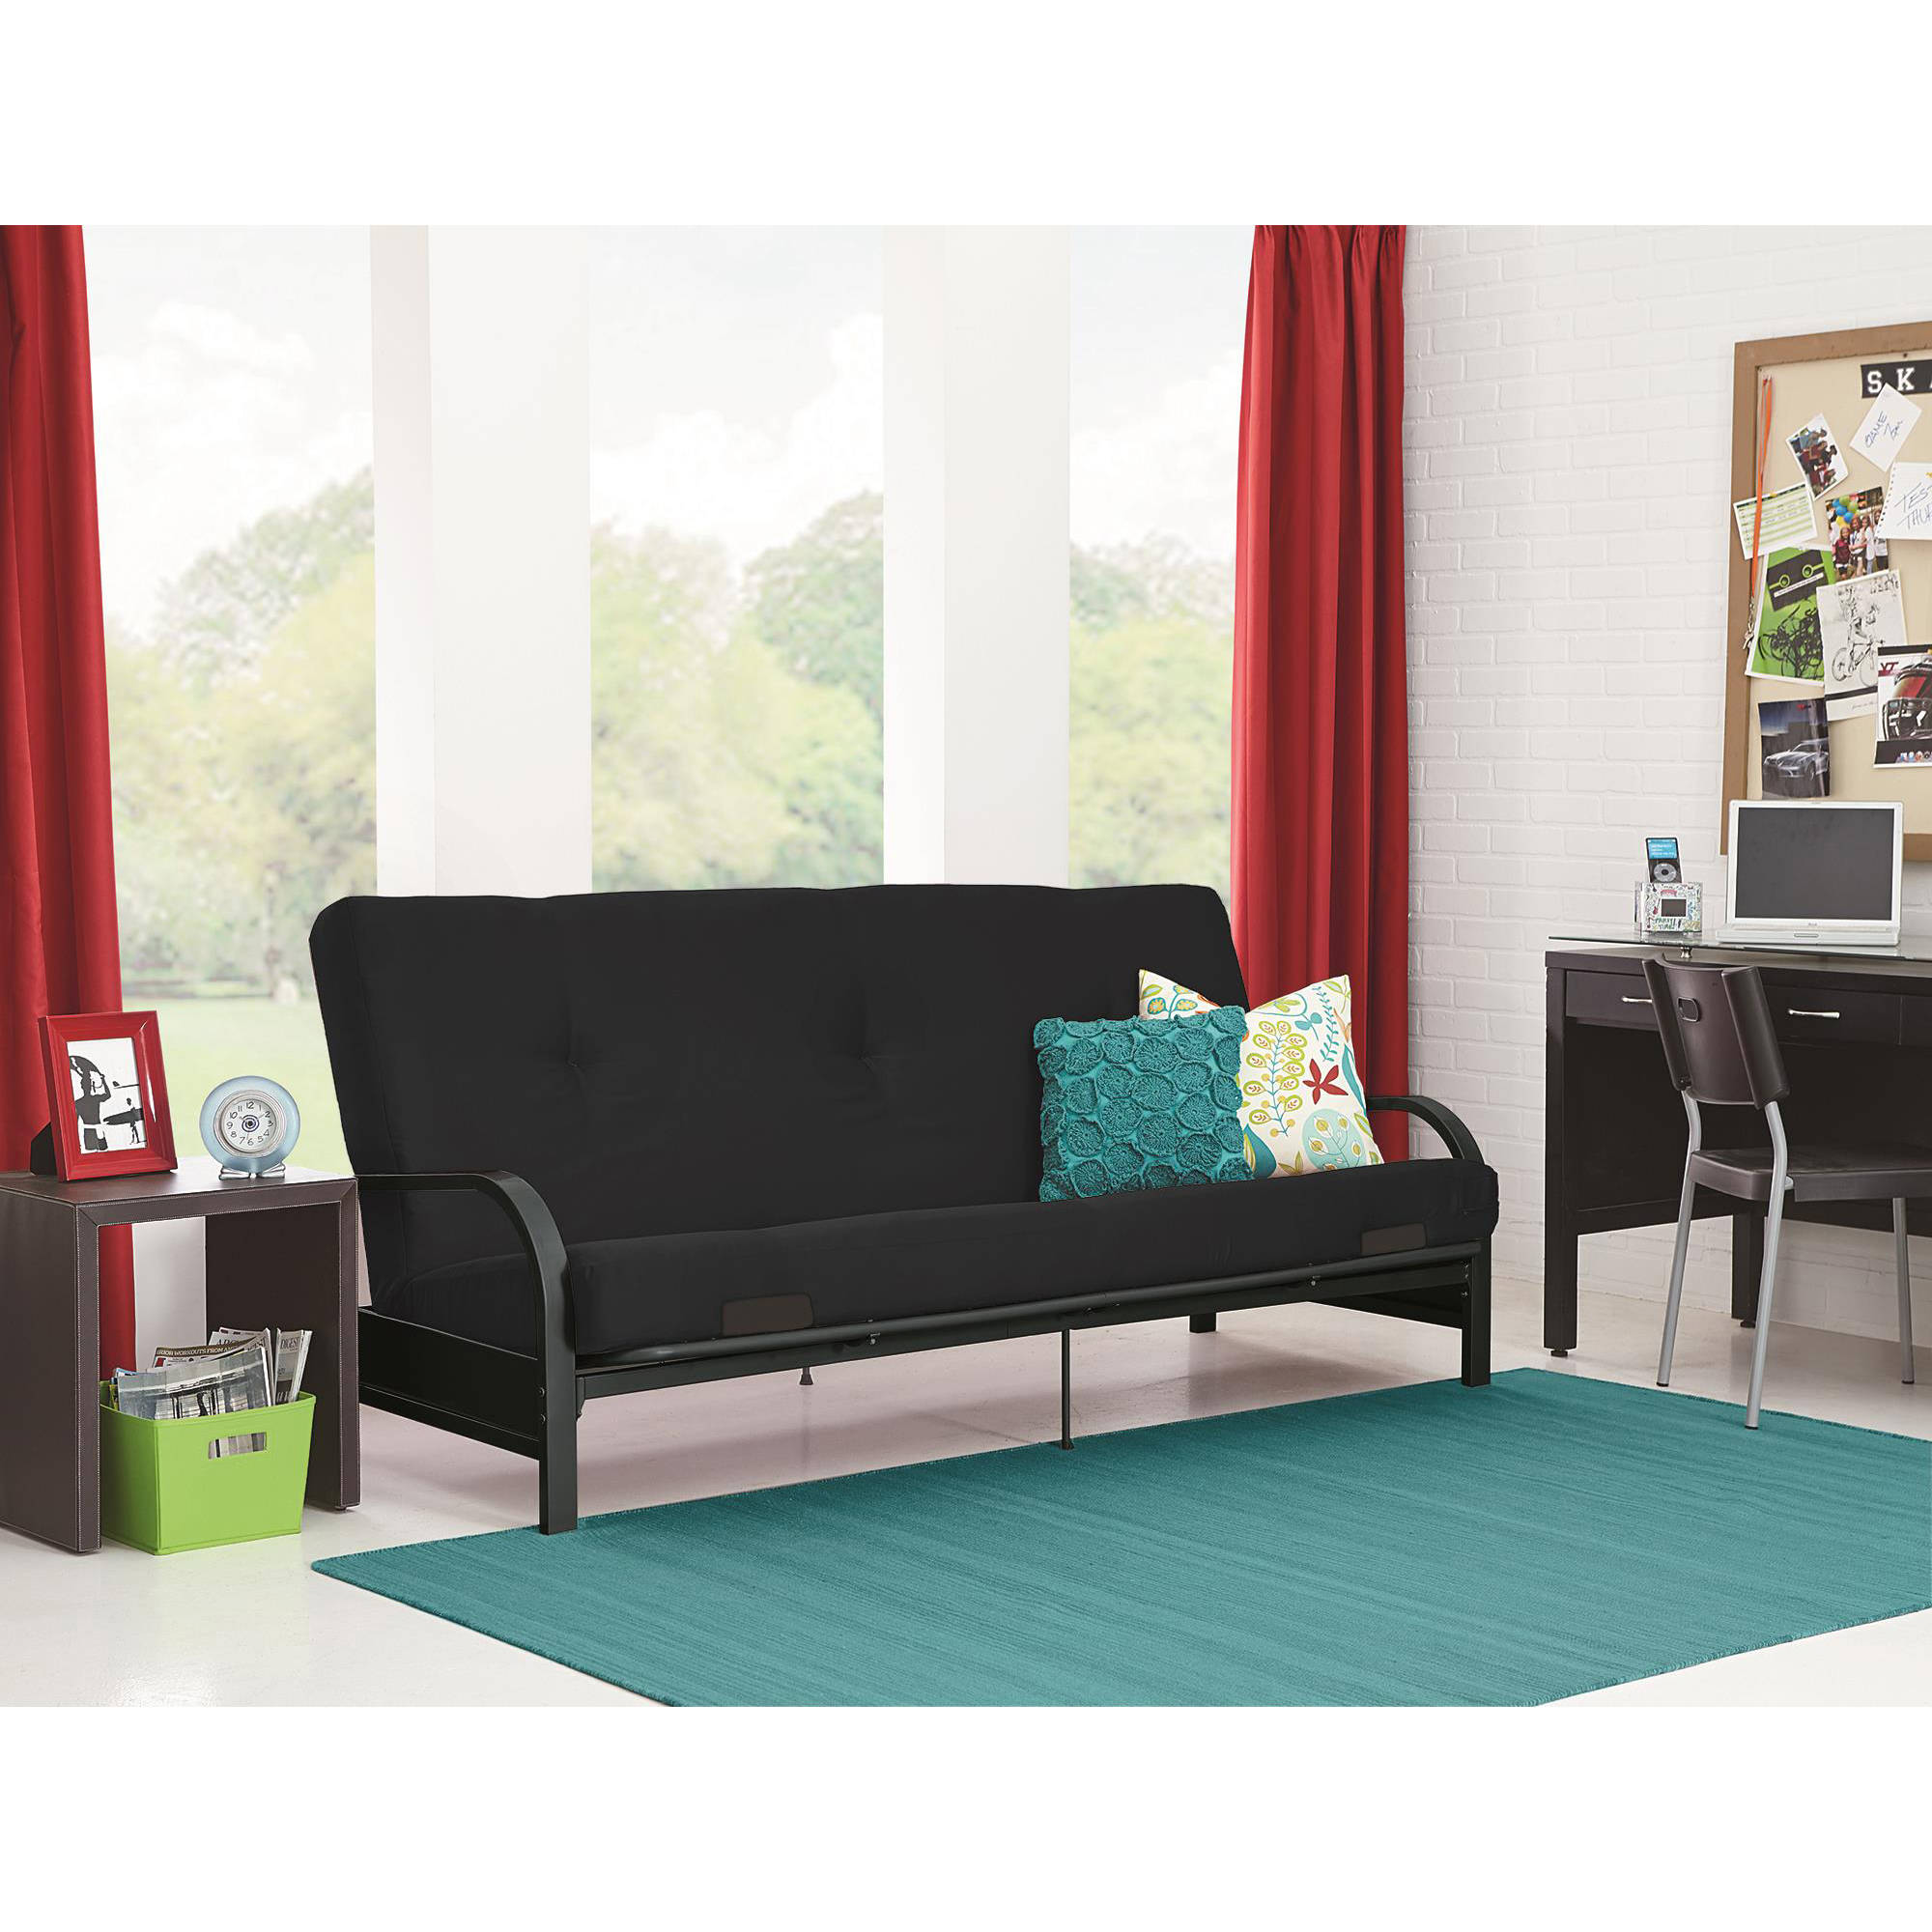 nadine frame dhp size depot futon futons home and the p espresso black mattress set queen